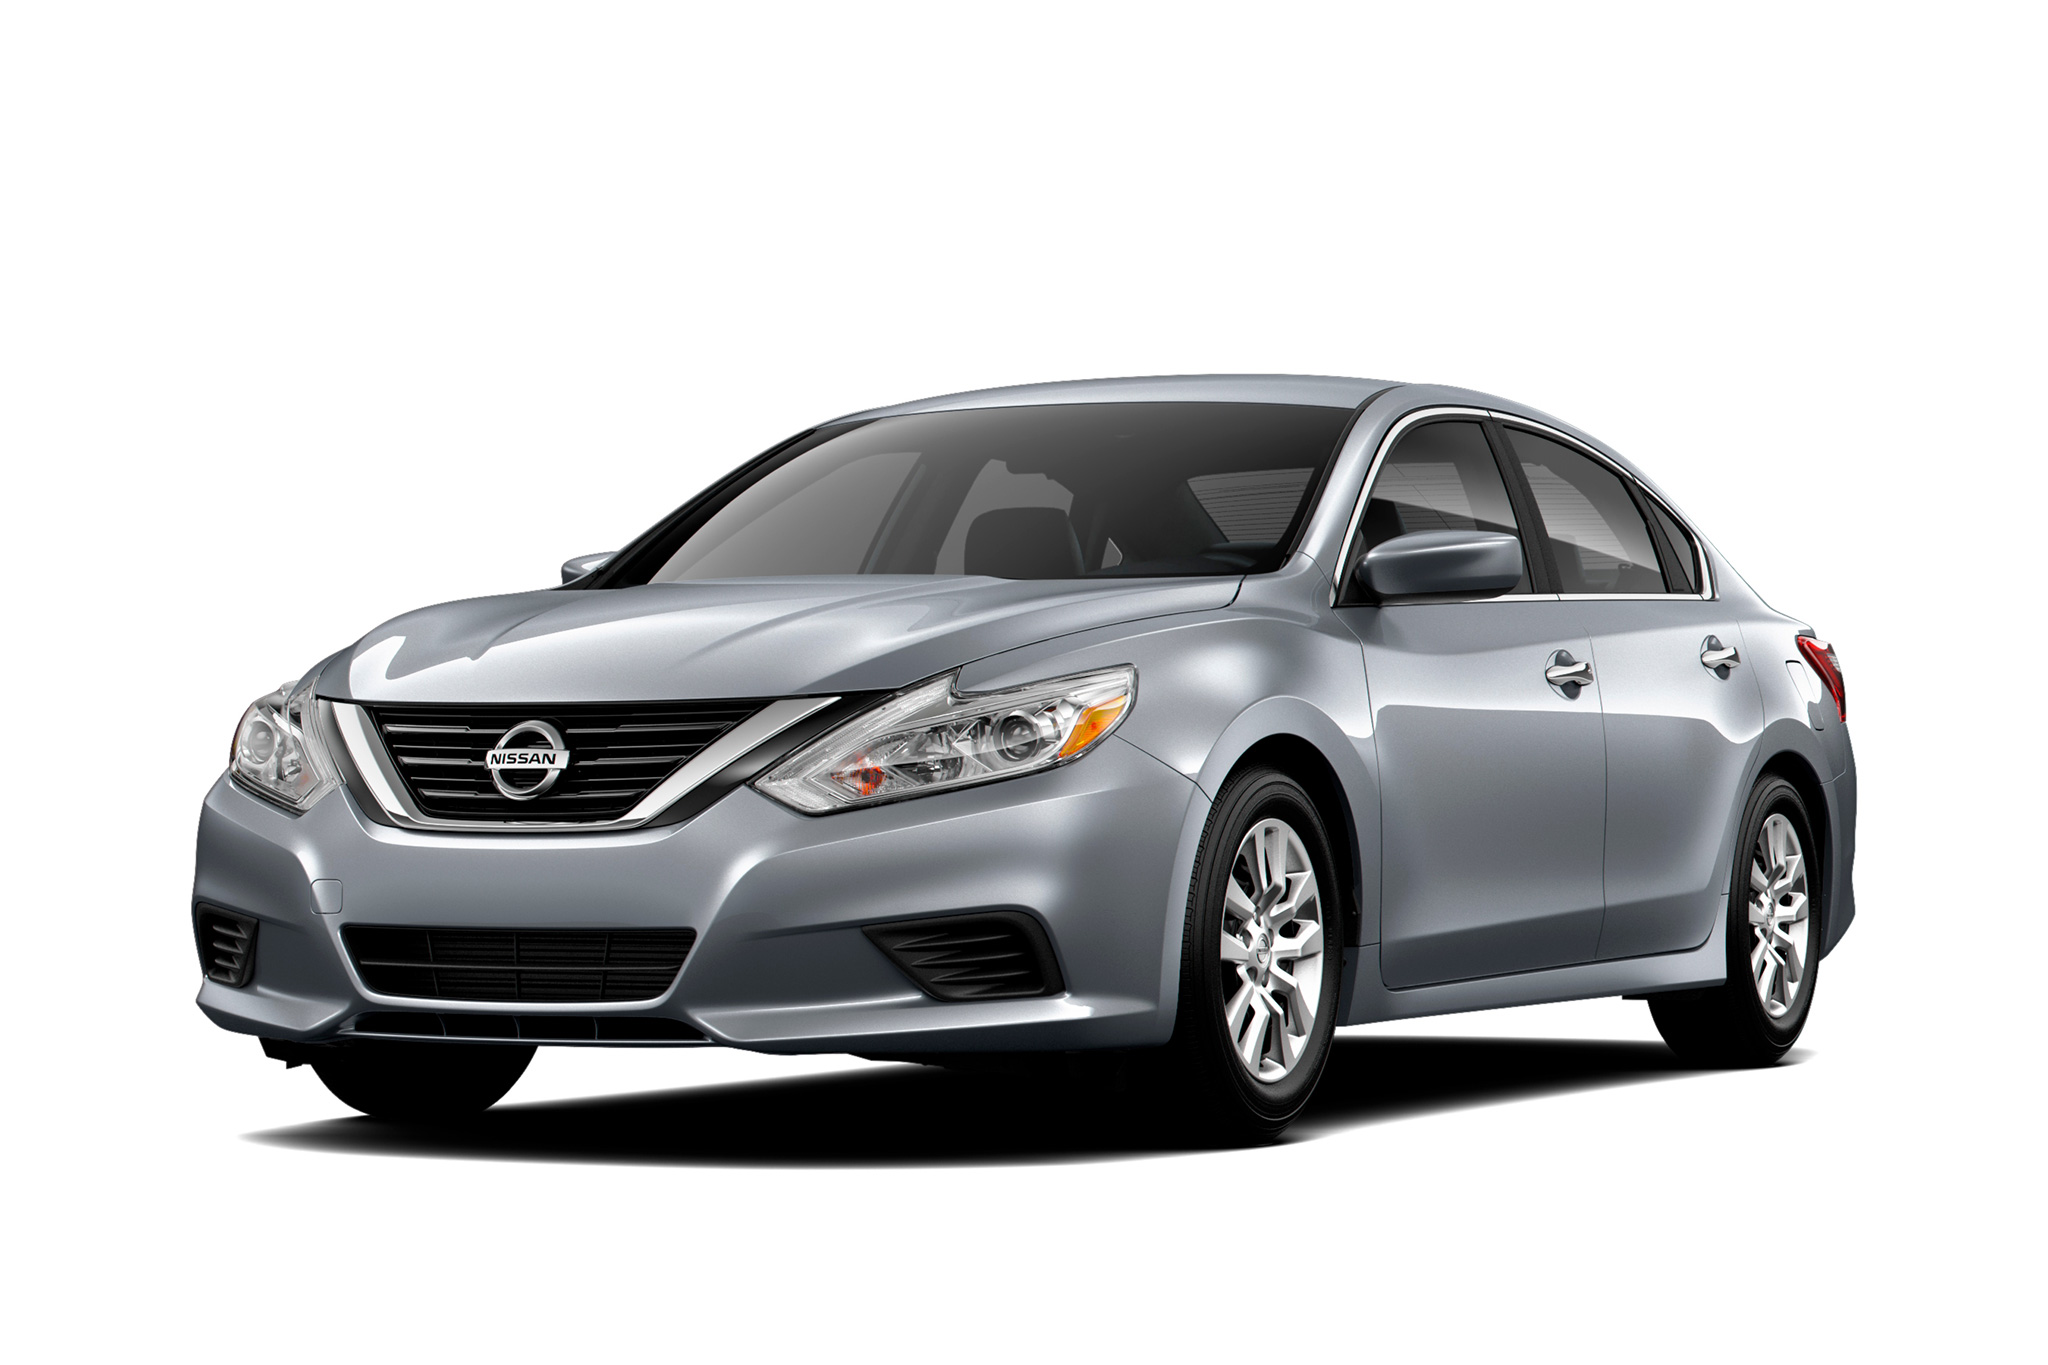 Nissan Altima, what is the best type of car to rent